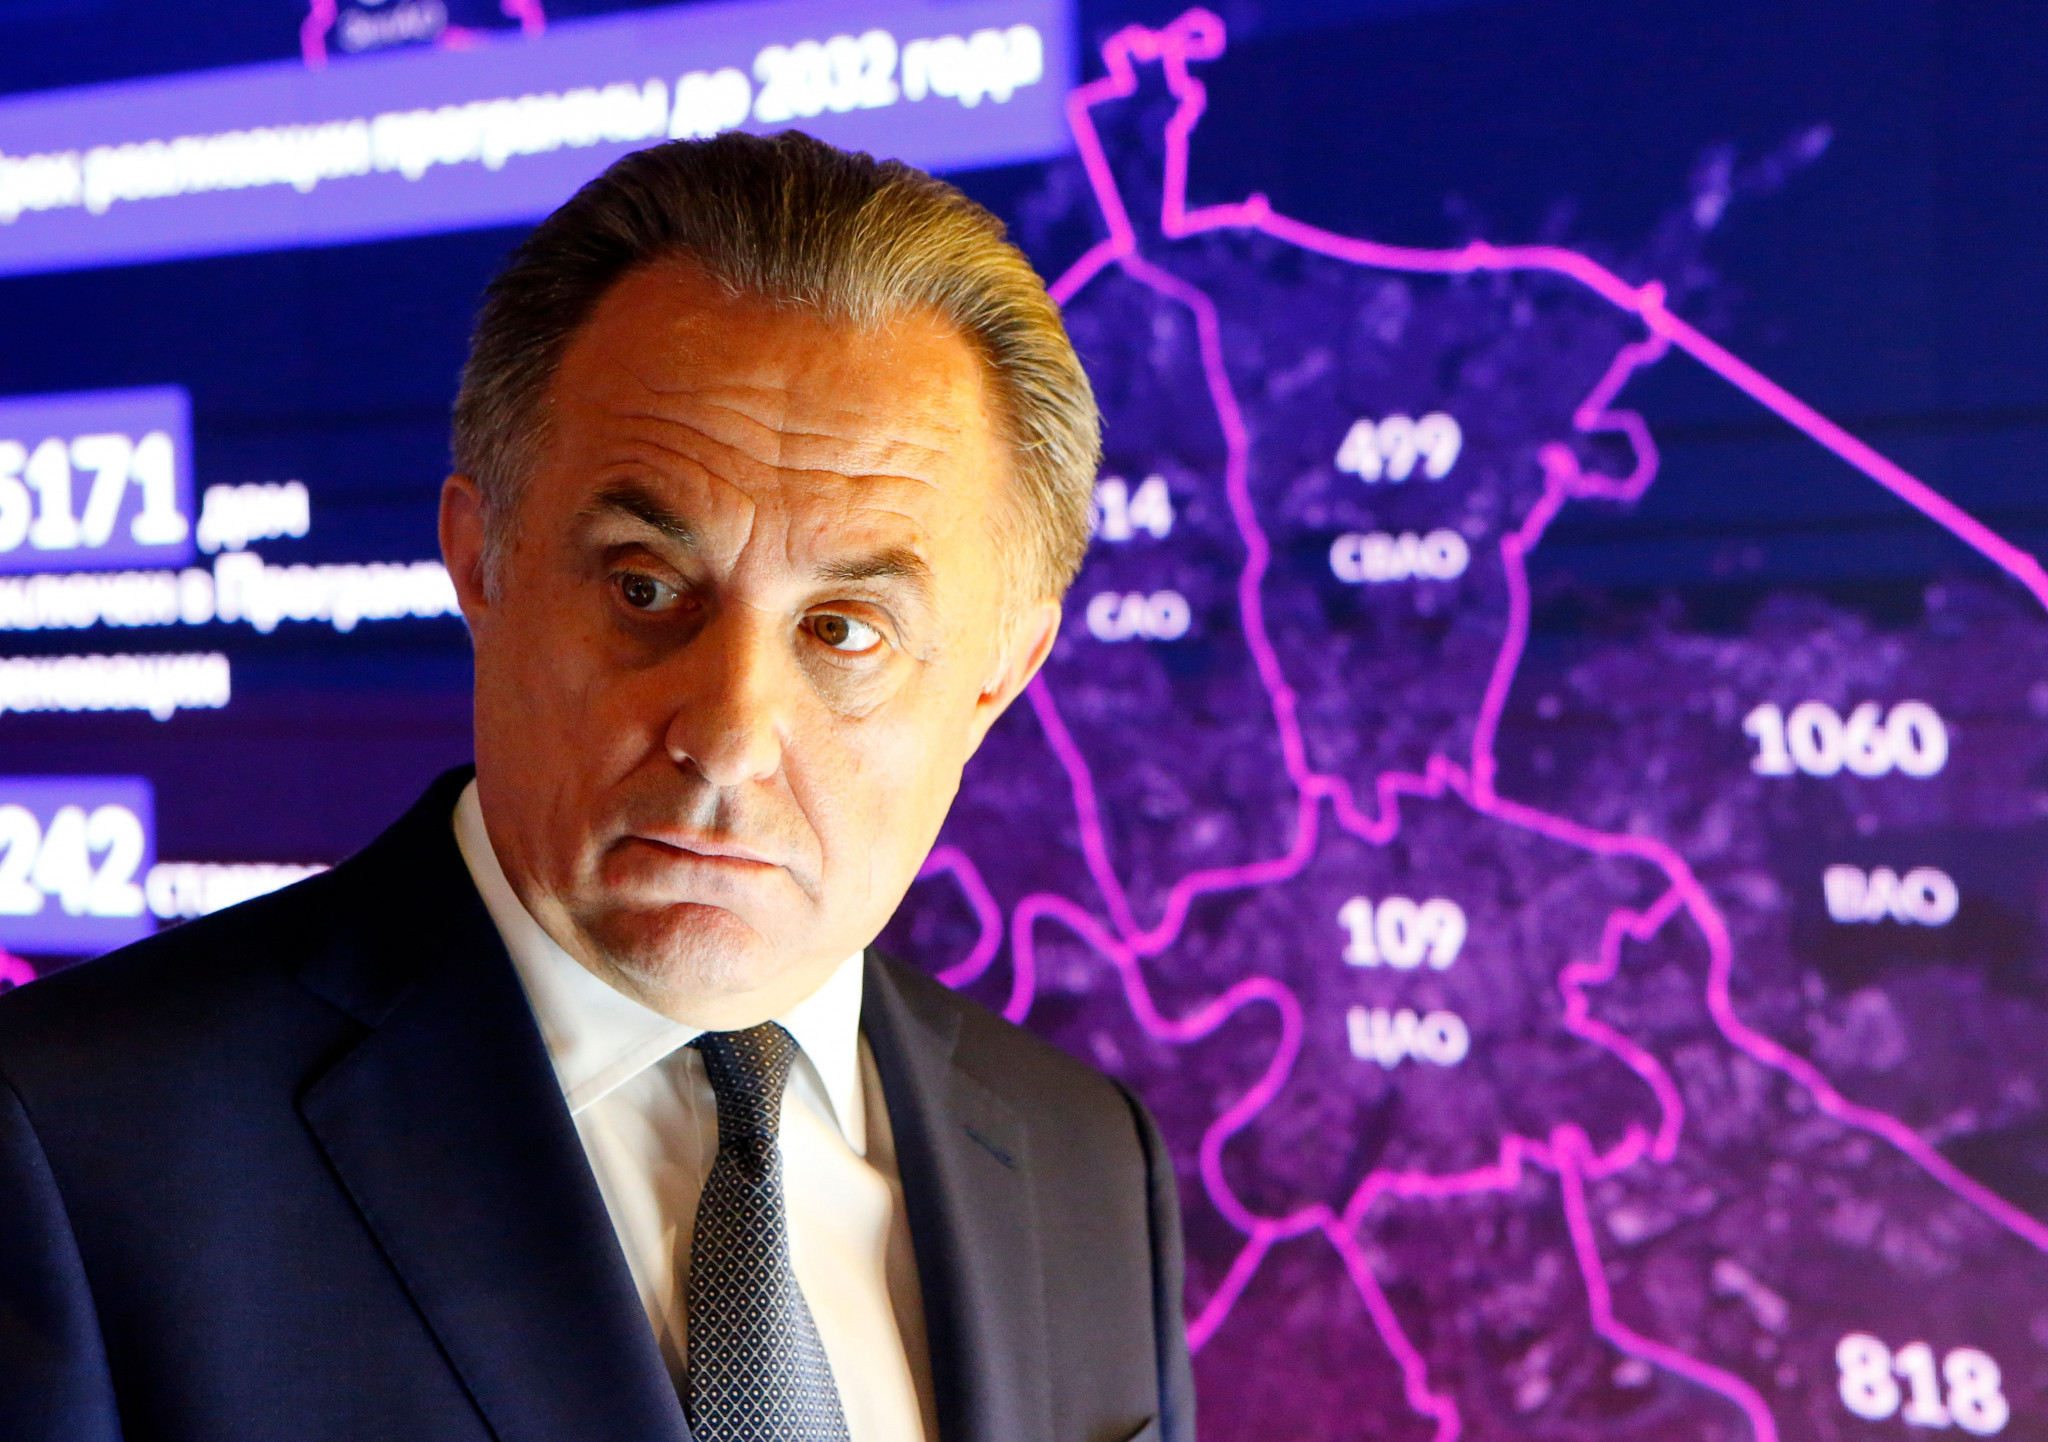 Mutko wins appeal at CAS against lifetime Olympic ban